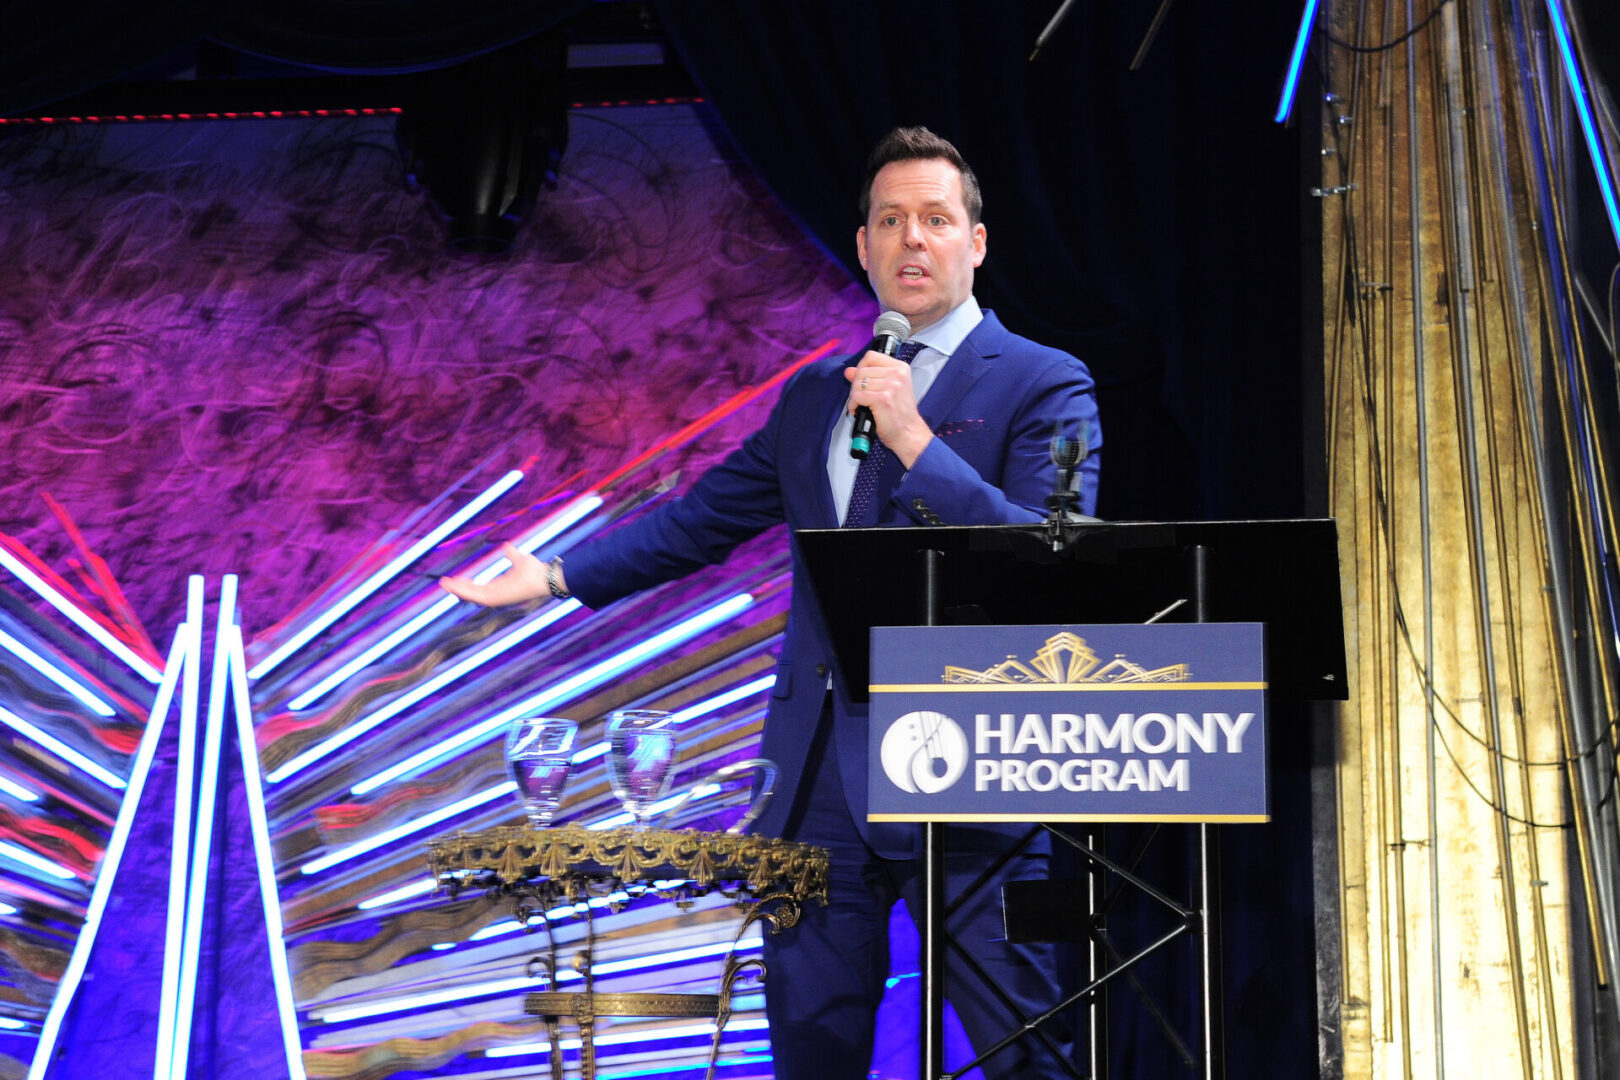 NEW YORK, NY - MARCH 2: Live Auction attends Harmony Program Annual Gala at Sony Hall on March 2, 2020 in New York. (Photo by Owen Hoffmann/PMC) *** Local Caption *** Live Auction